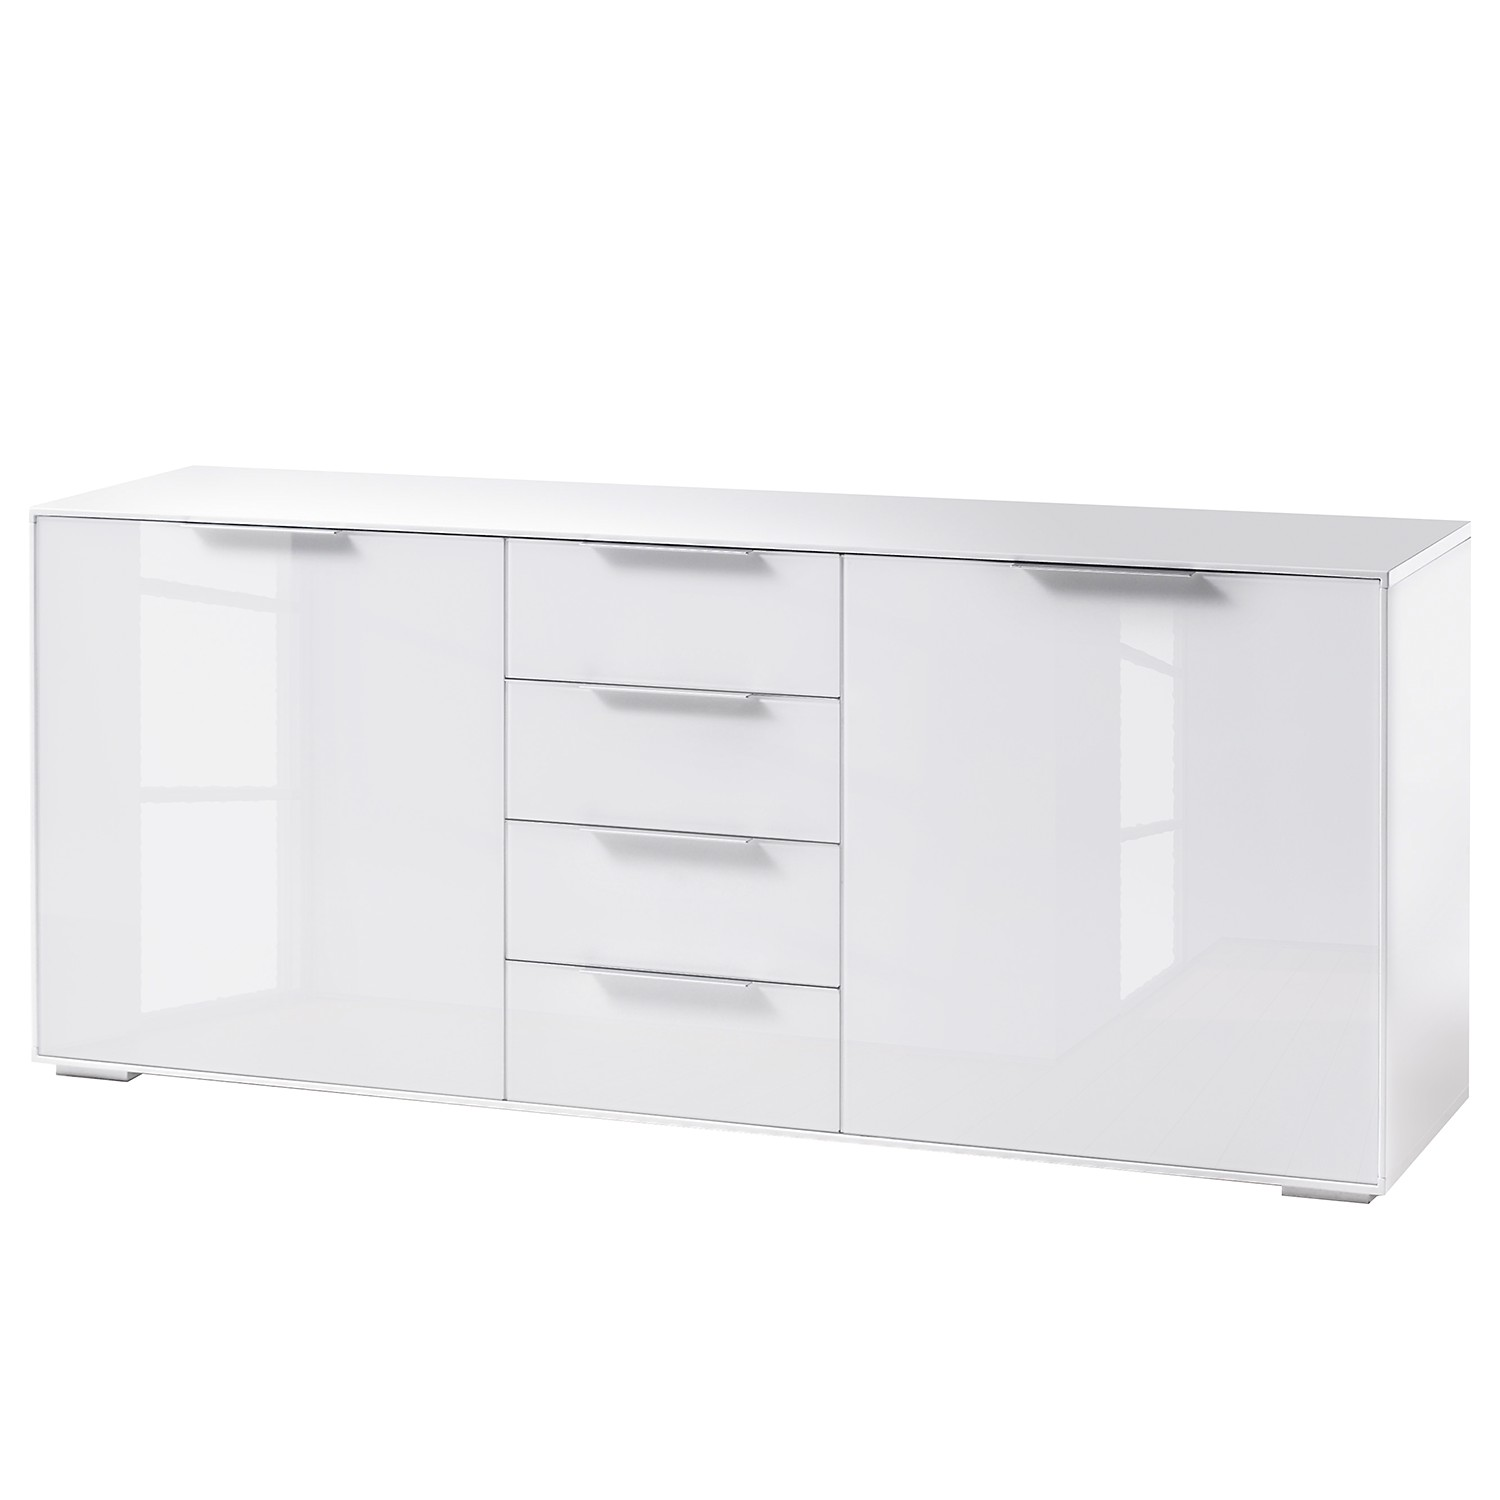 home24 Sideboard Breon IV